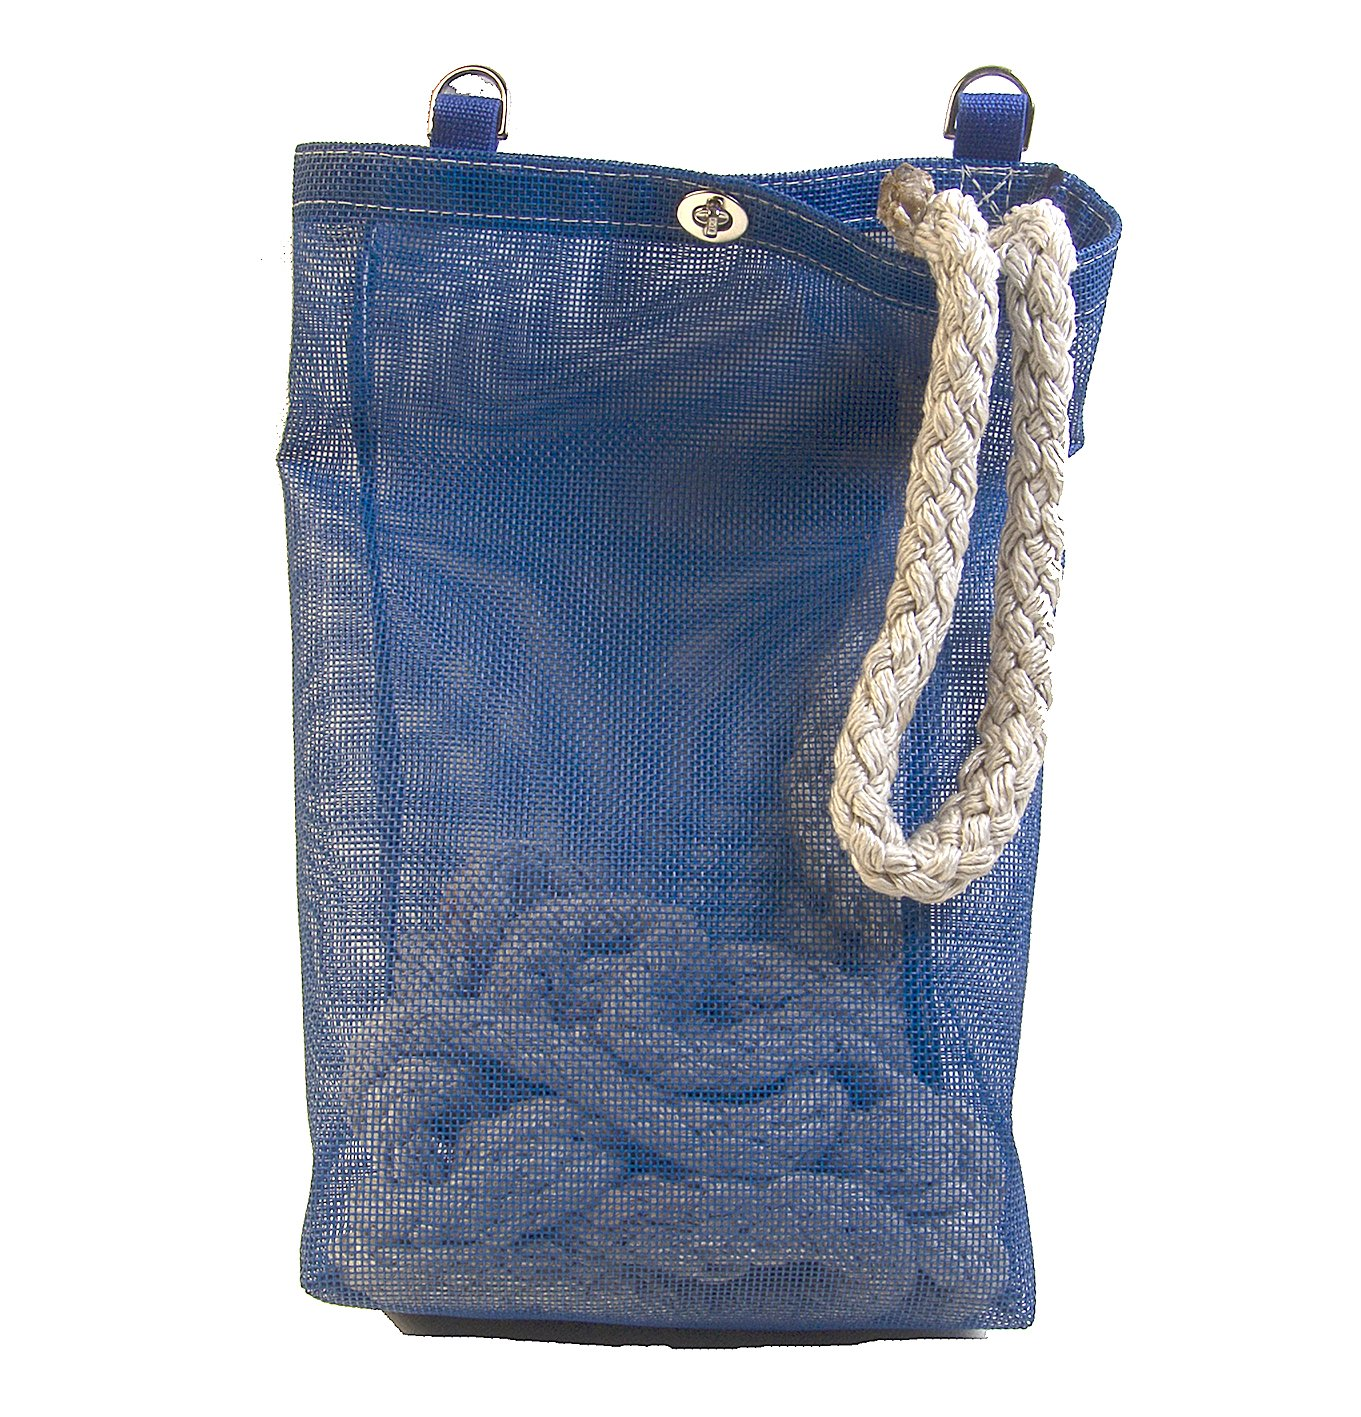 Rope Bag, Blue Mesh, Heavy Duty, Great for Boats or Shore Lines